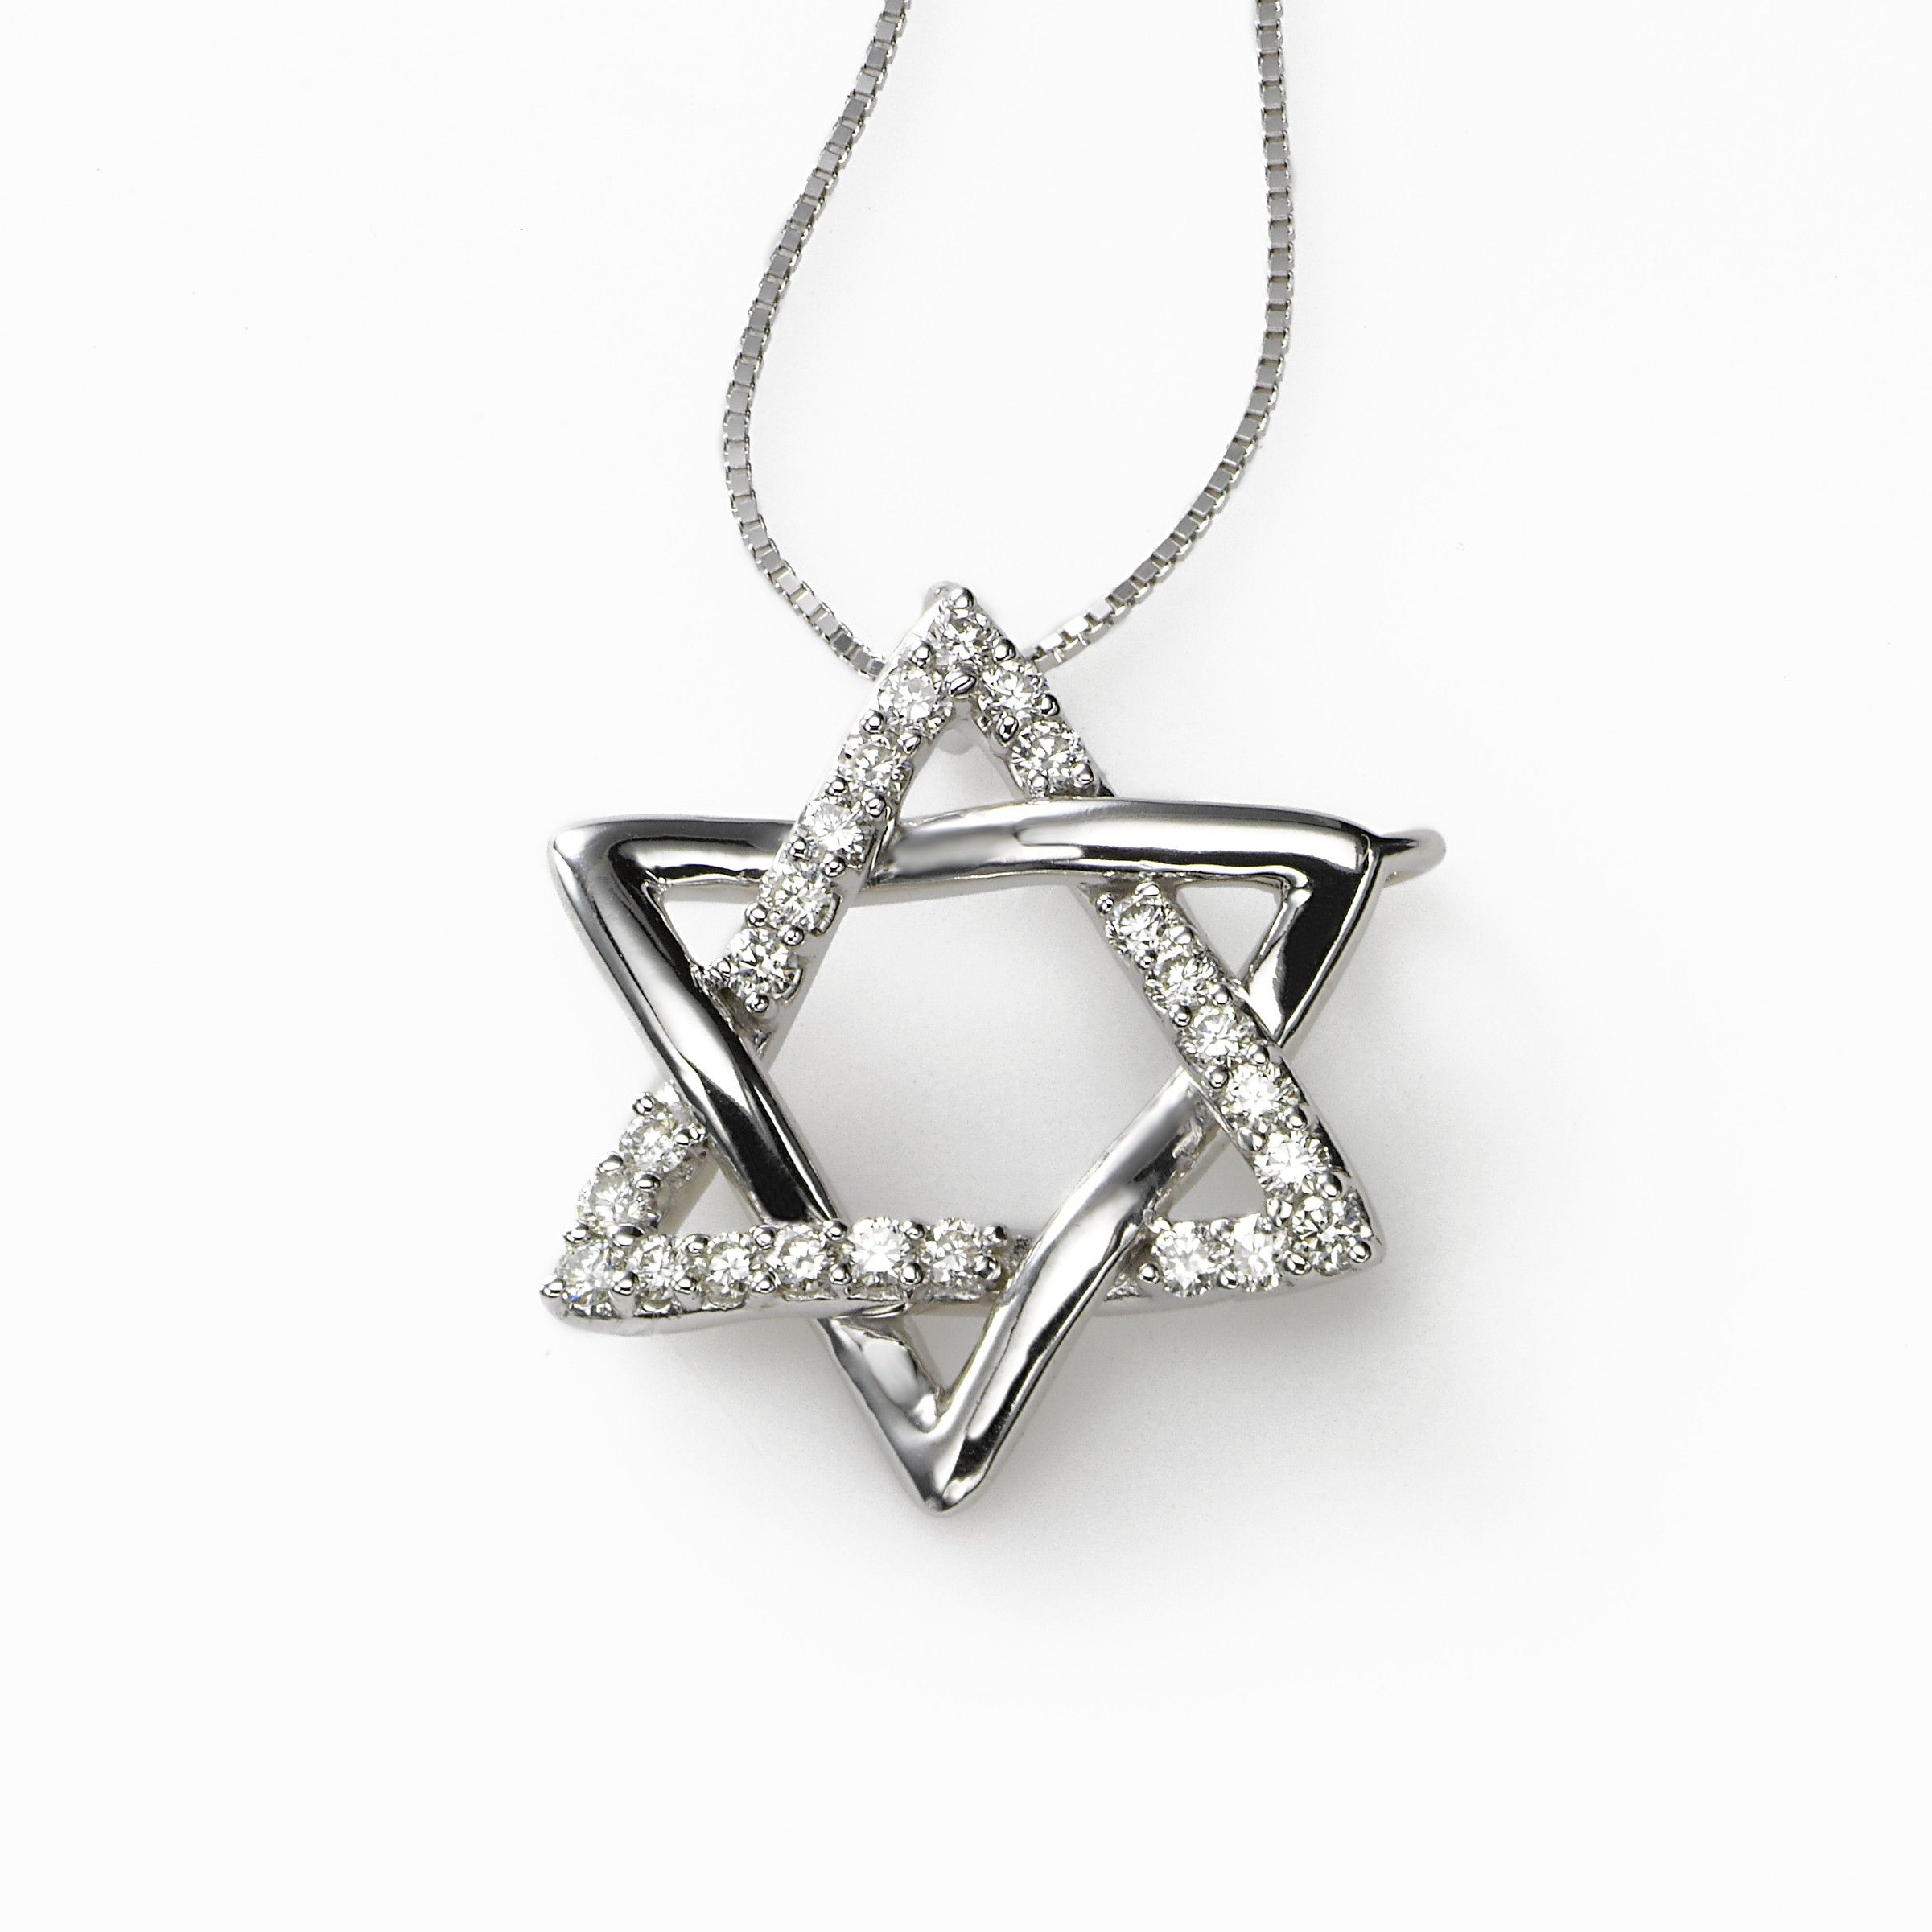 Stunning Diamond Star of David, 14K White Gold